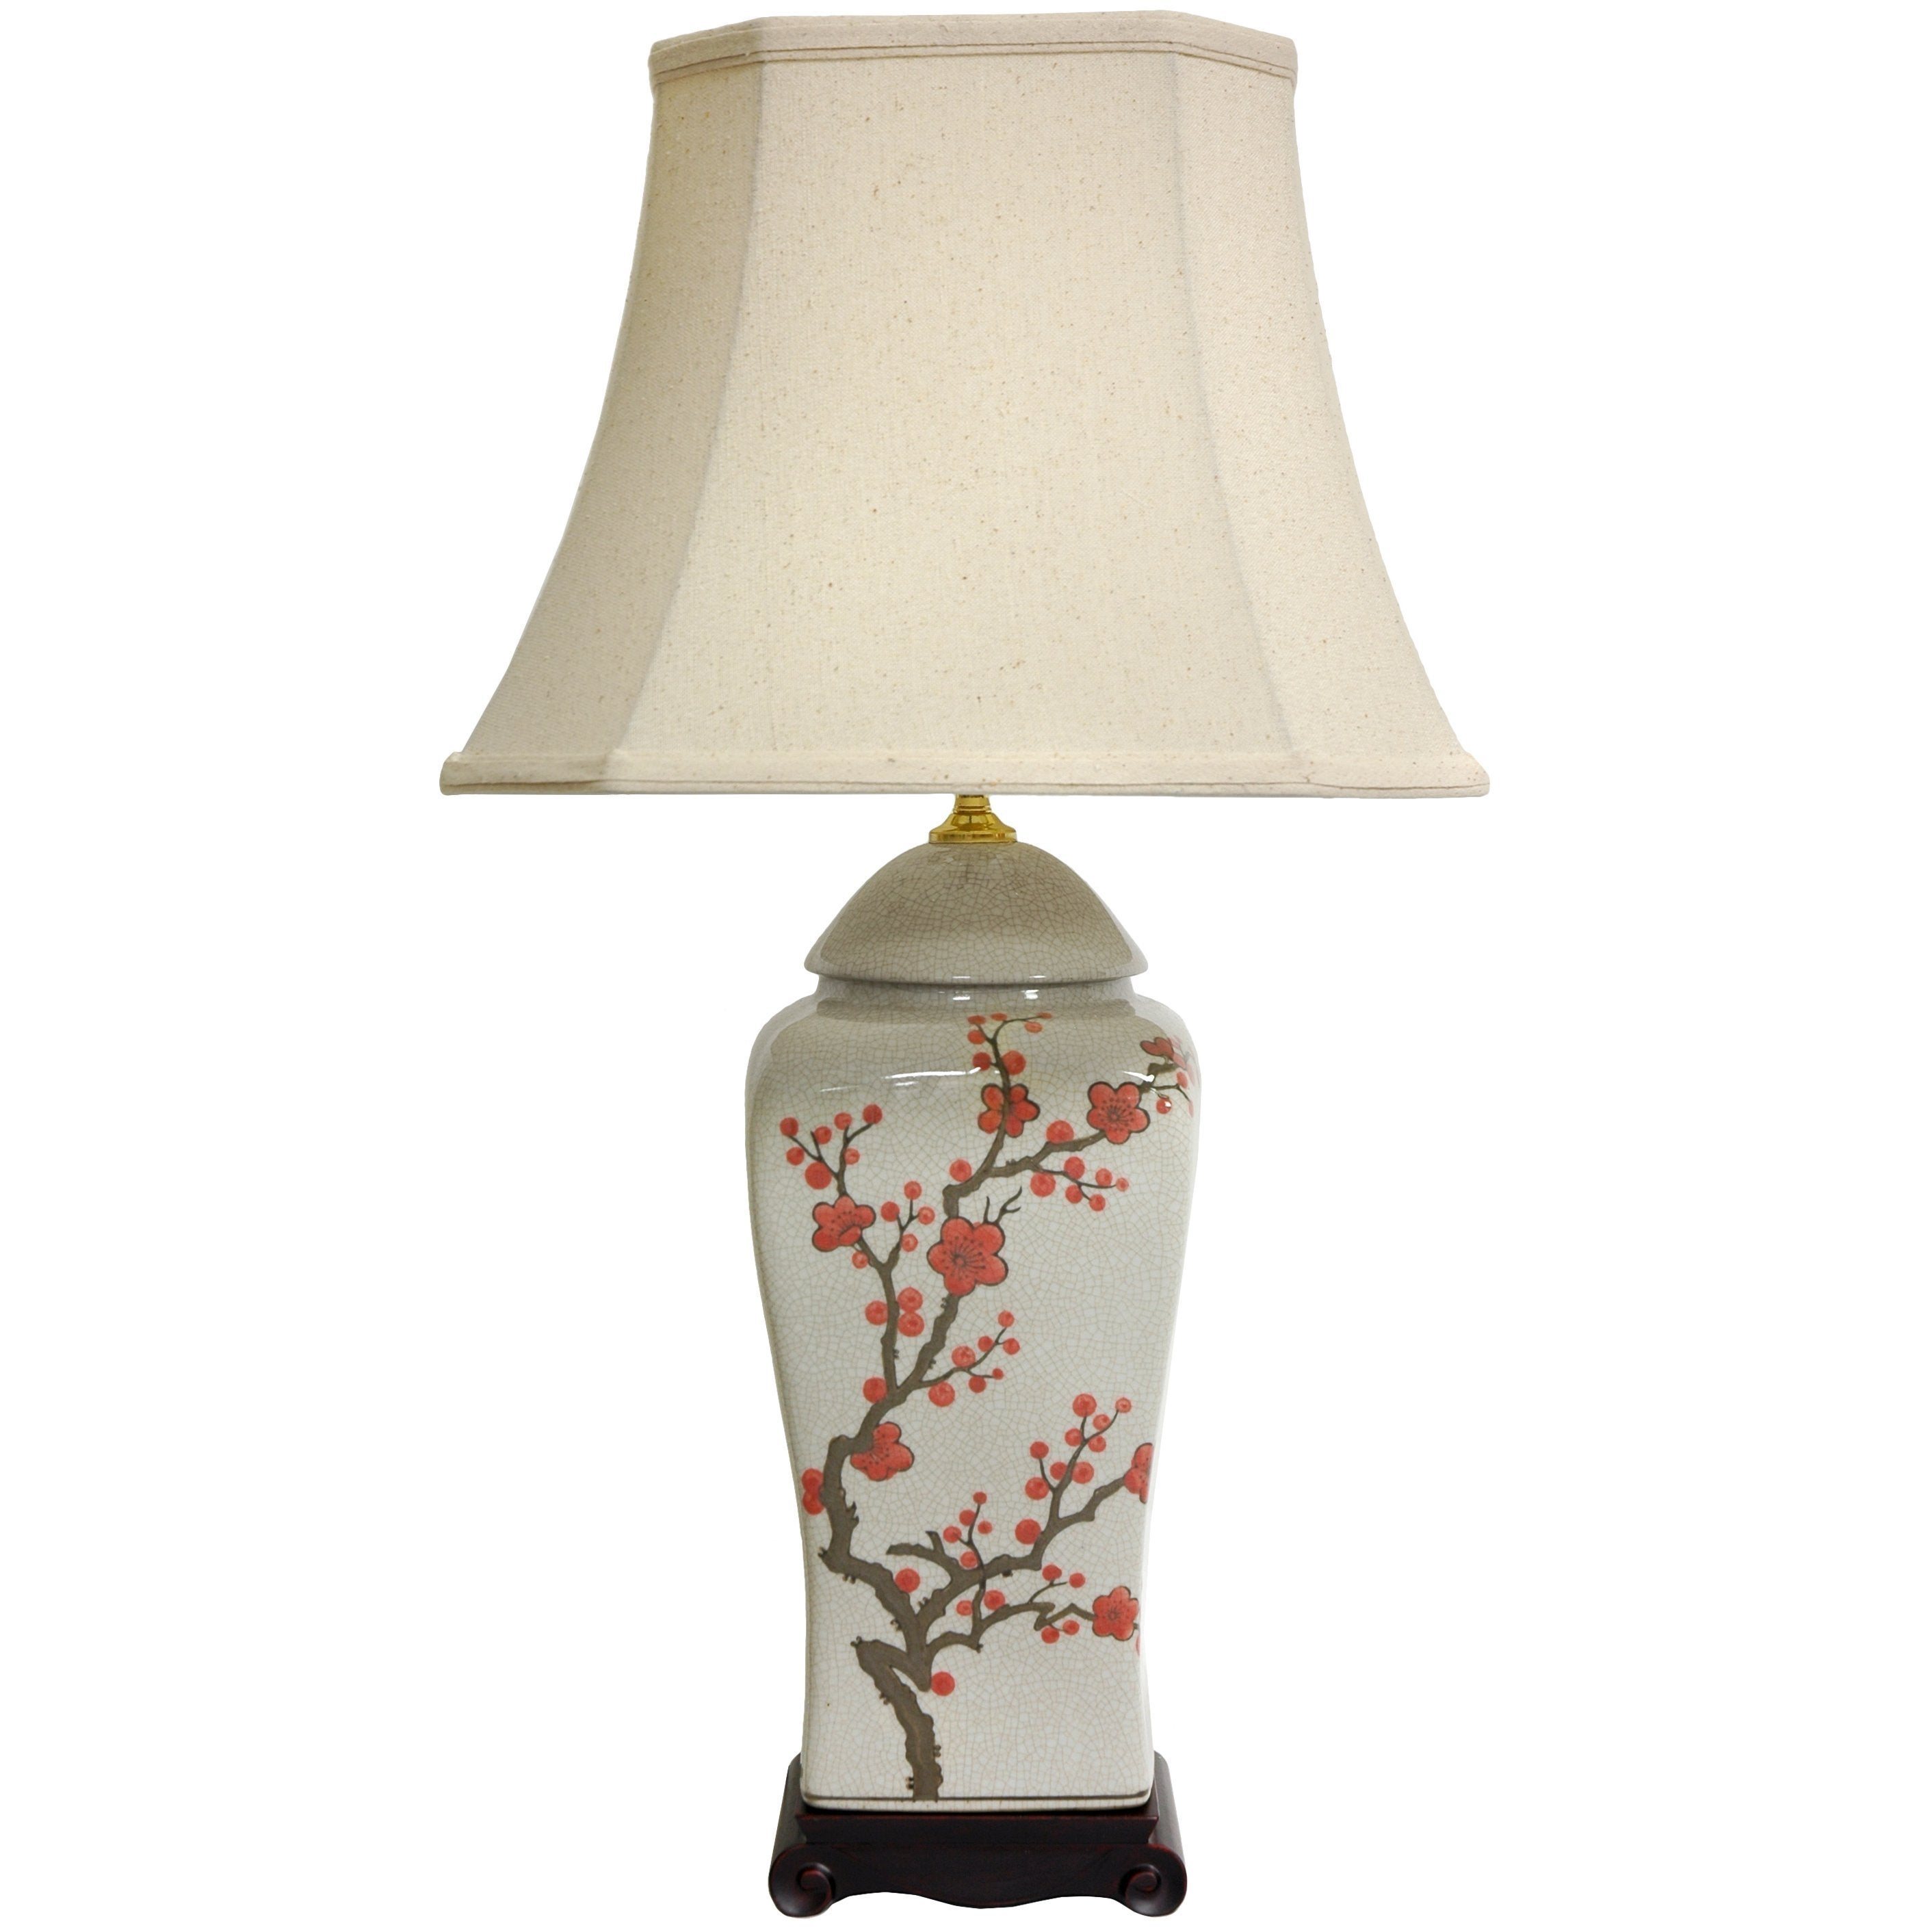 Handmade 26-inch White and Red Cherry Blossom Porcelain V...